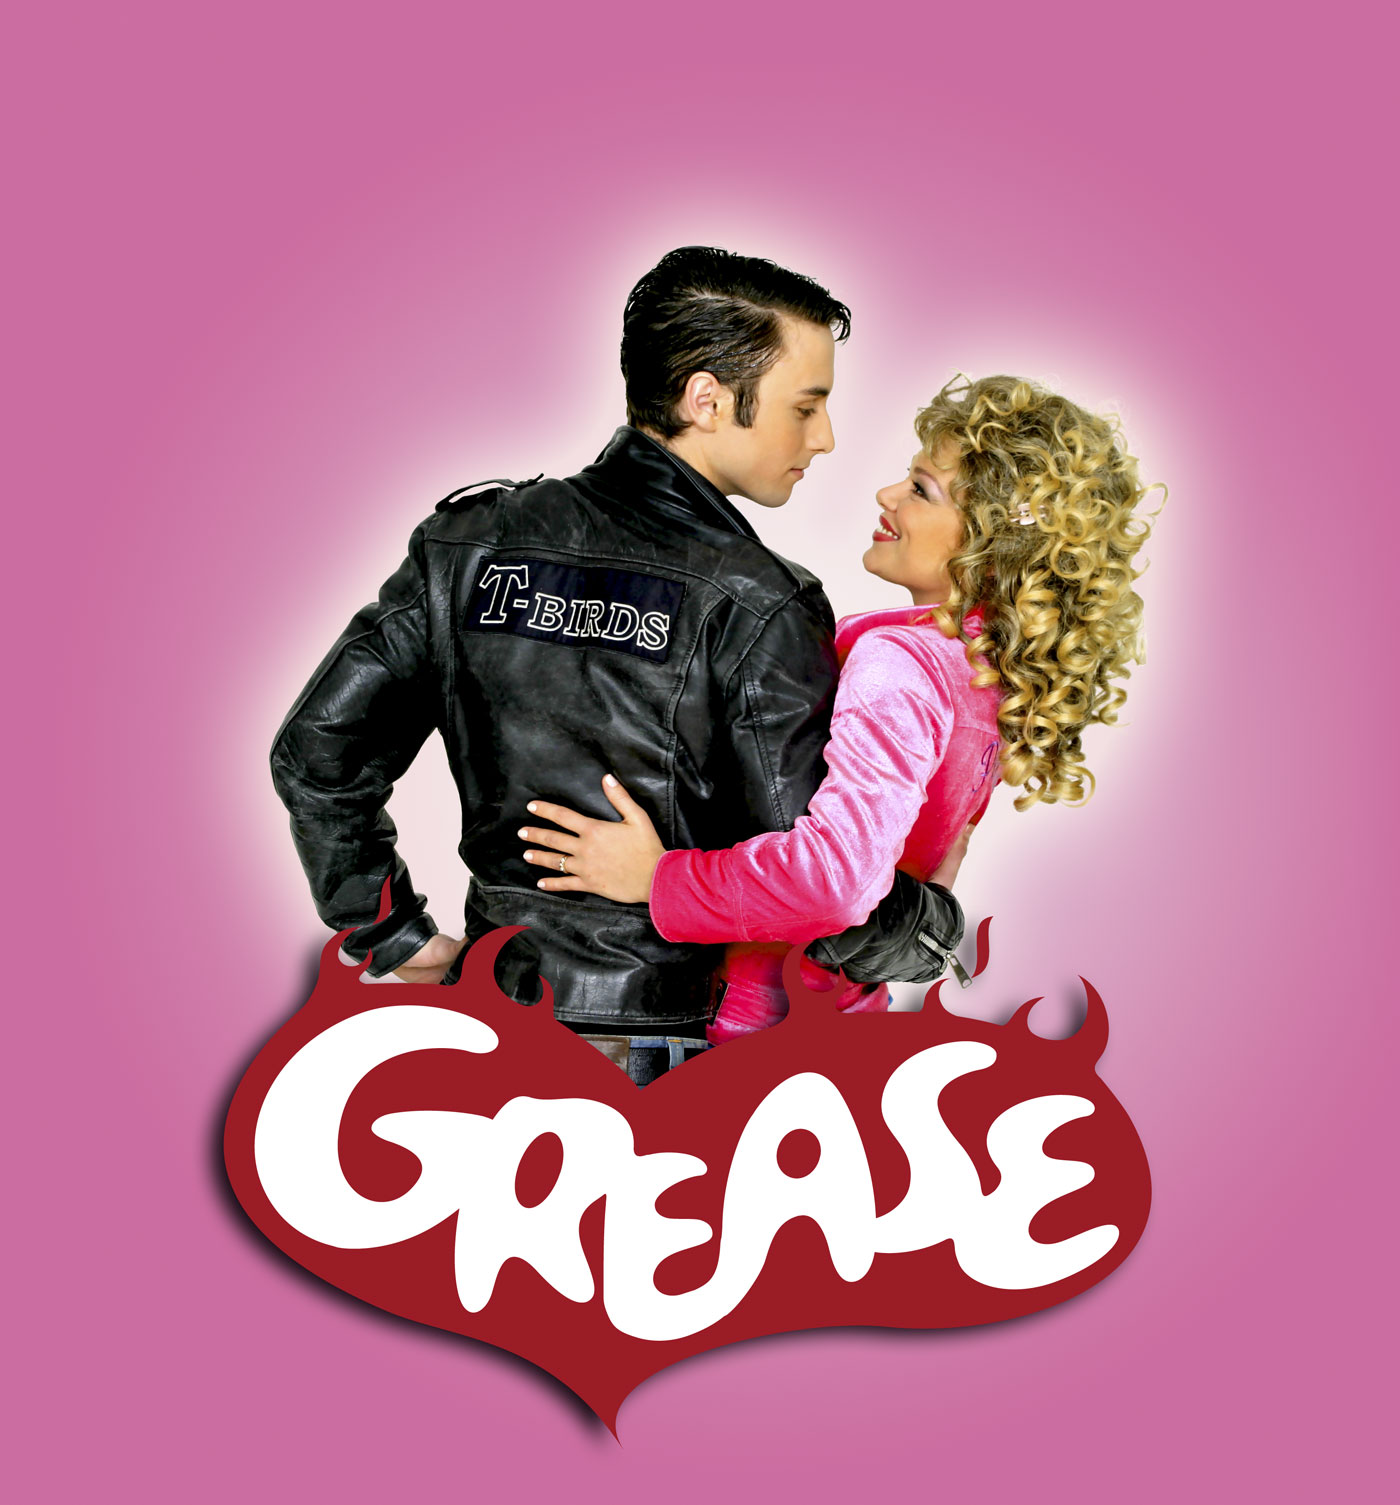 Bildresultat för grease nöjesteatern 2019